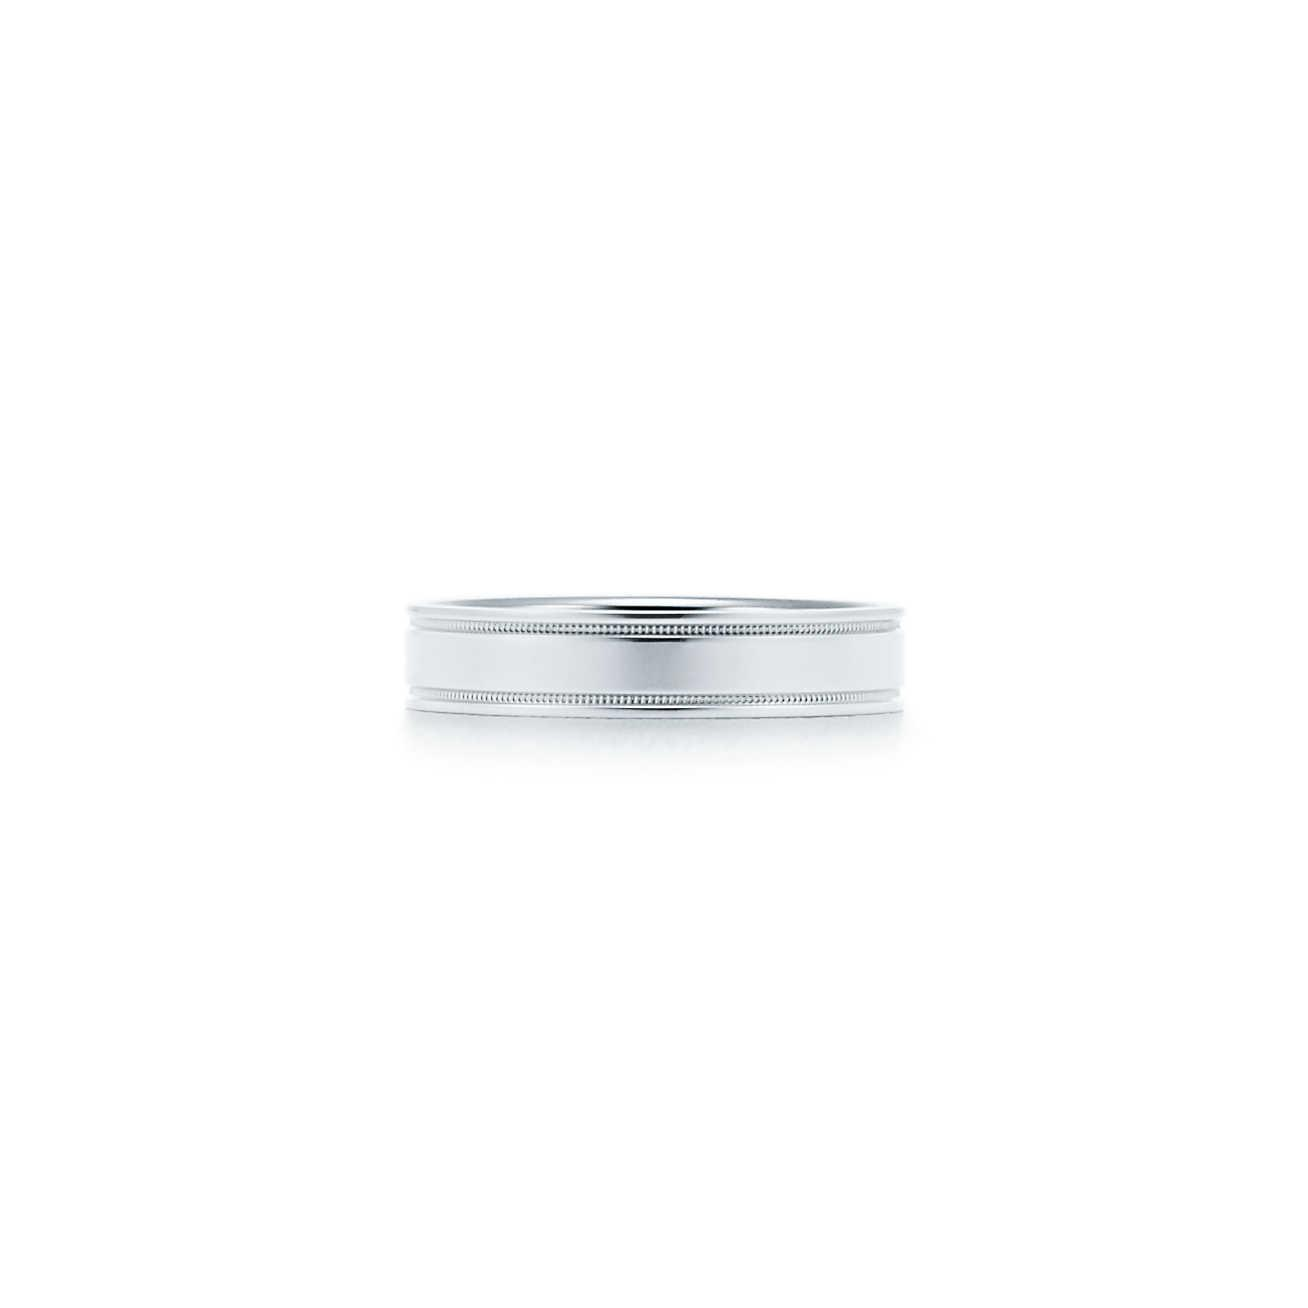 Lucida band ring in platinum with Tiffany & Co engraving, 3mm wide - Size 9 1/2 Tiffany & Co.